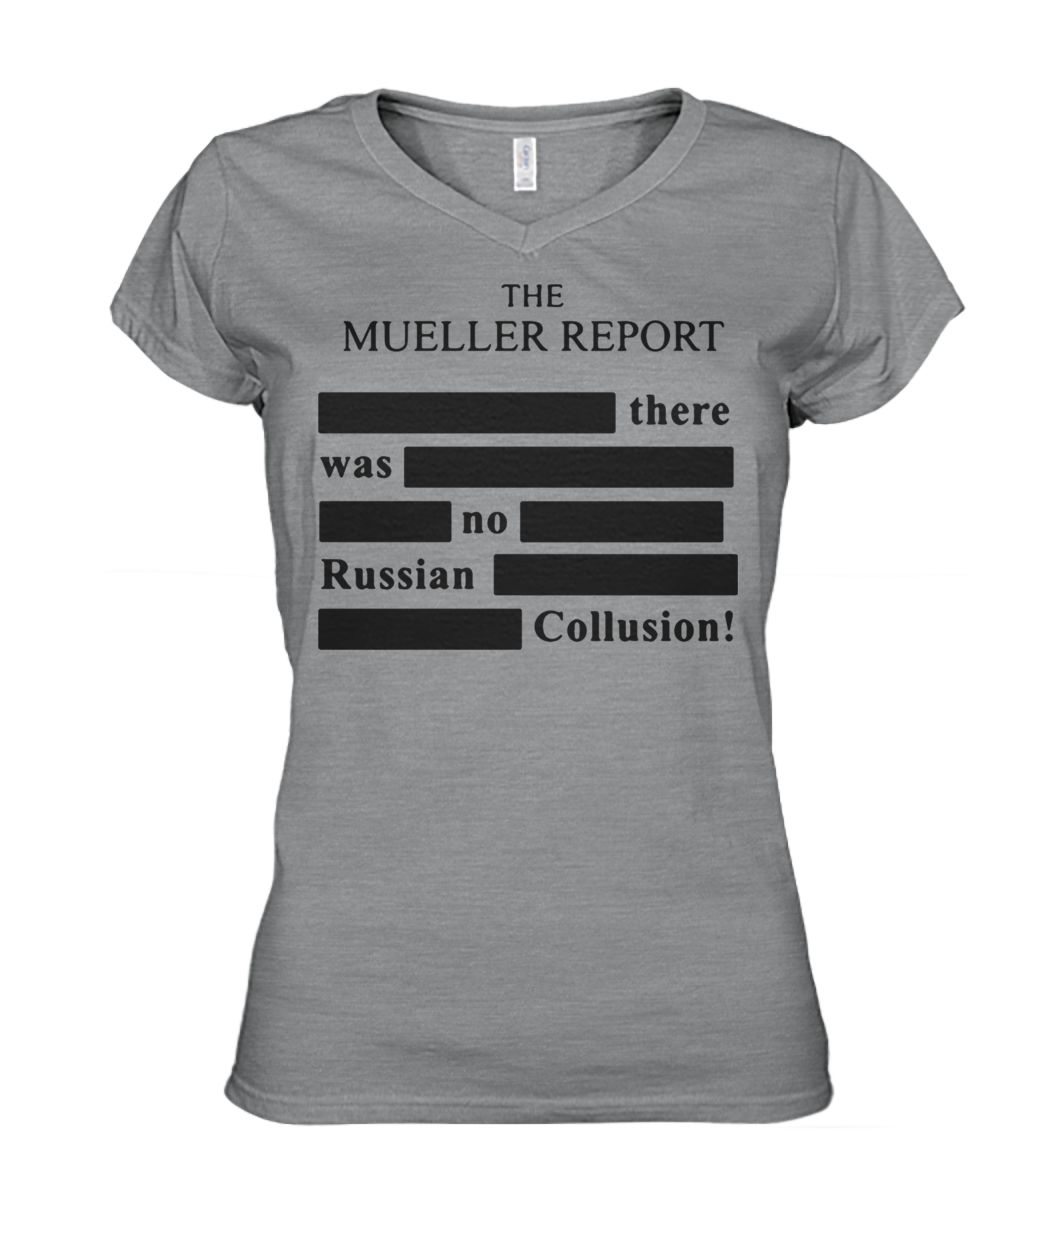 [Hot version] The mueller report there was no russian collusion shirt